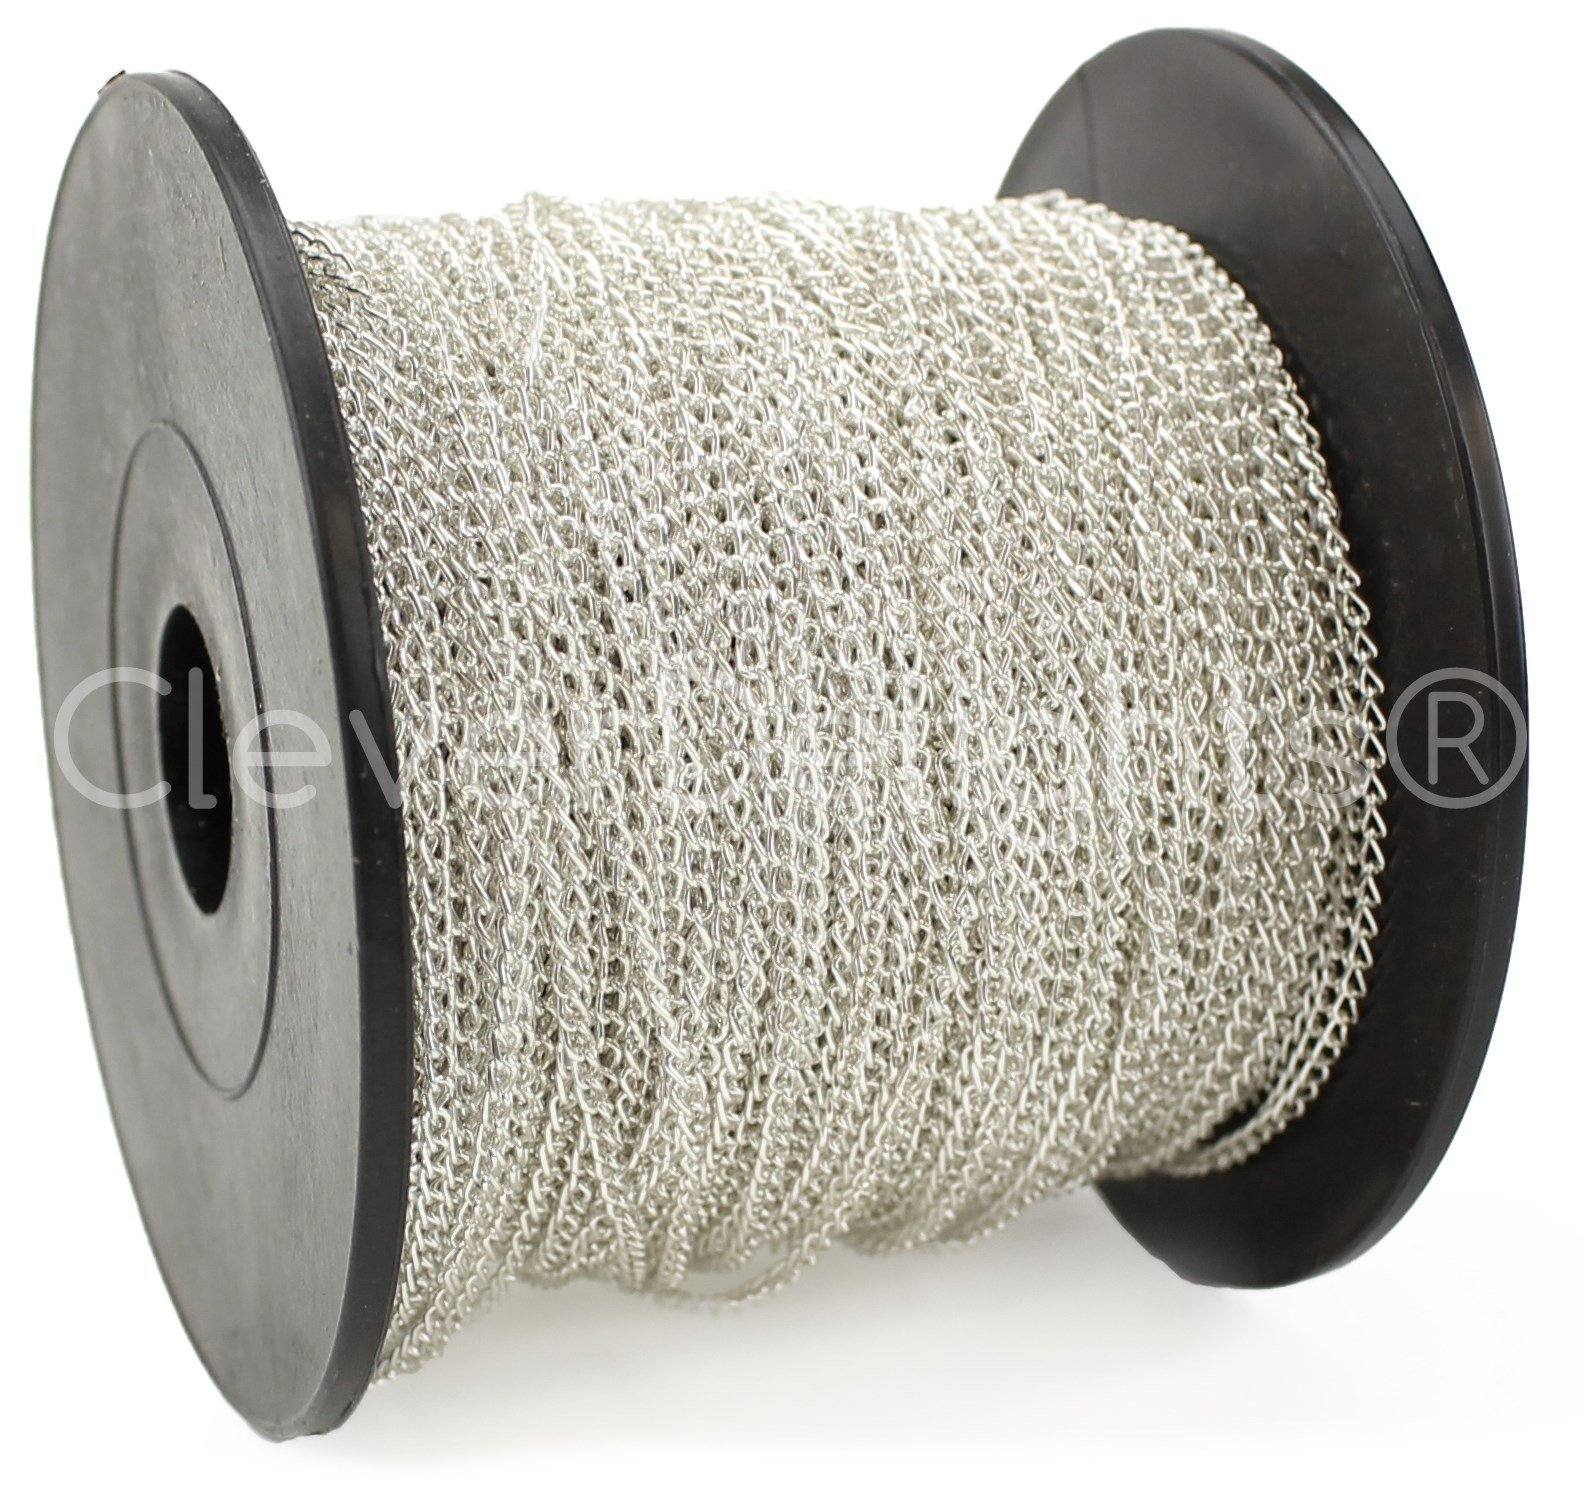 CleverDelights Curb Chain Spool - 2x3mm Link - Shiny Silver Color - 330 Feet - Bulk Chain Roll by CleverDelights